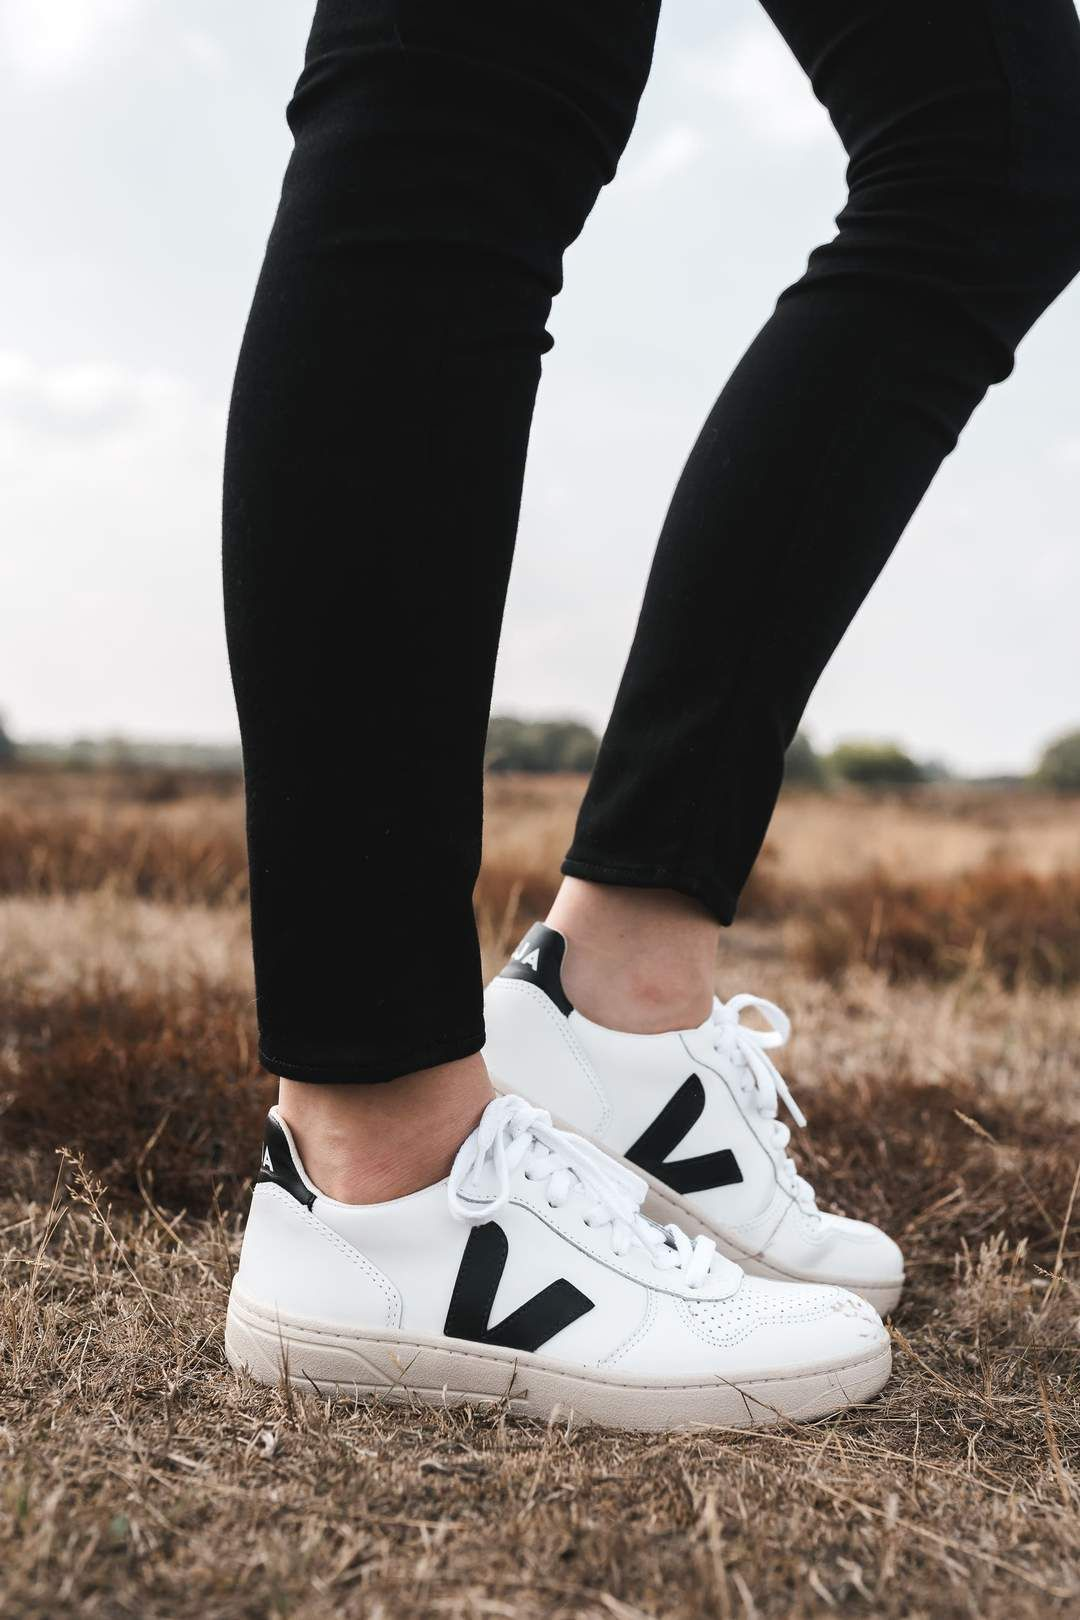 9bee23f497d v-10 sneaker extra white black by Veja on thegreenlabels.com